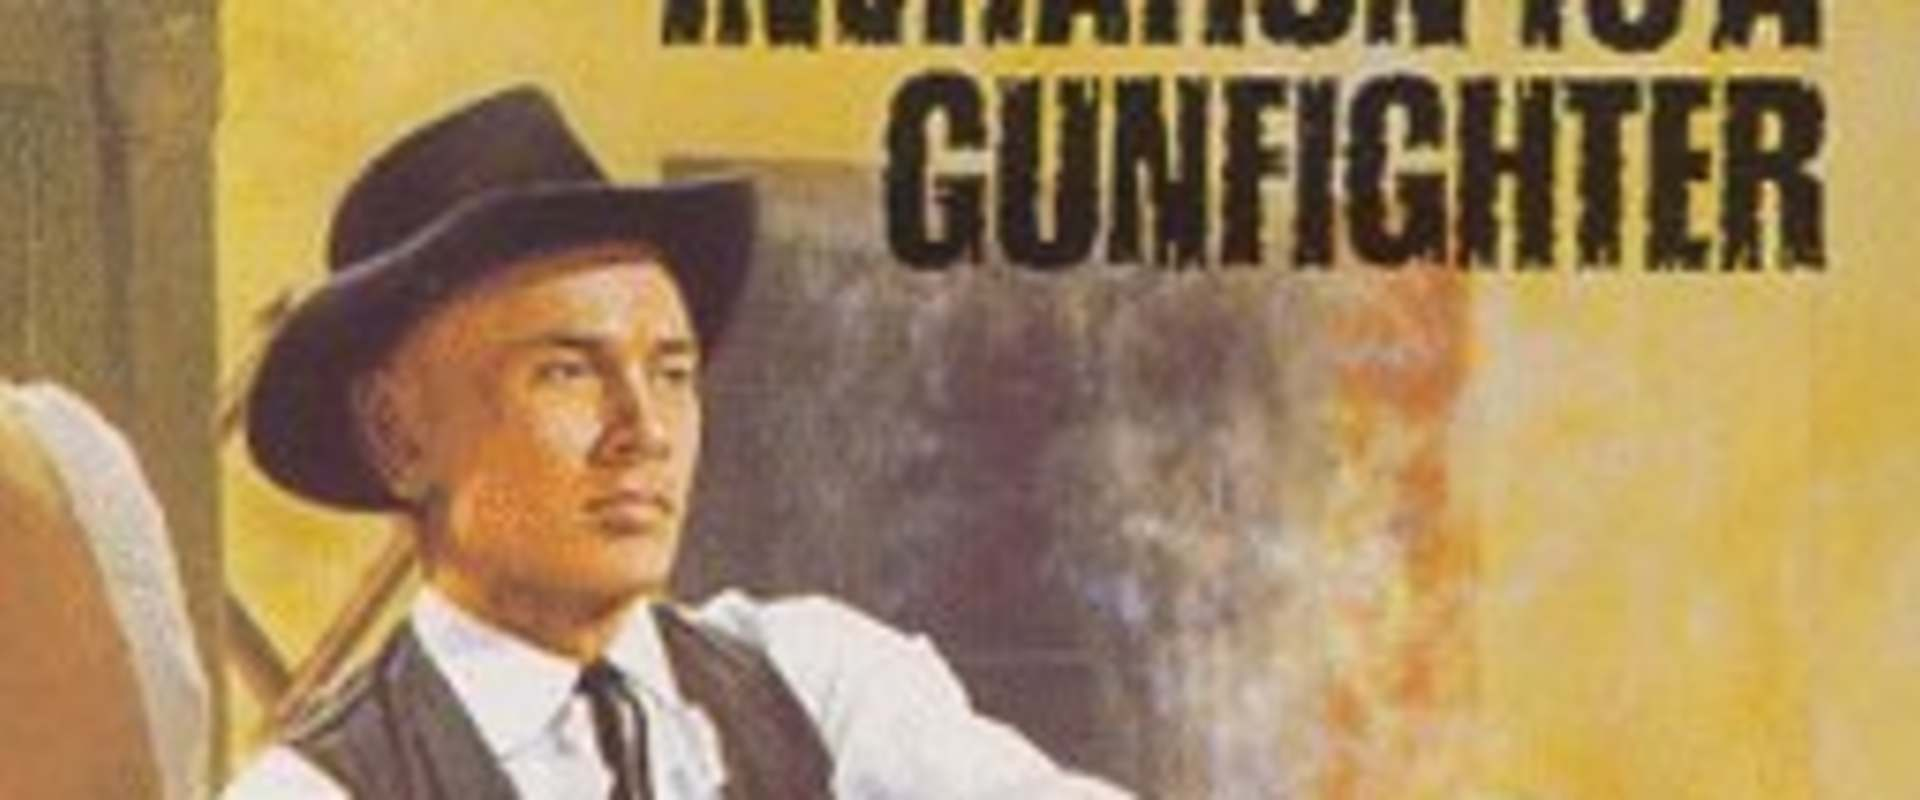 Invitation to a Gunfighter background 1